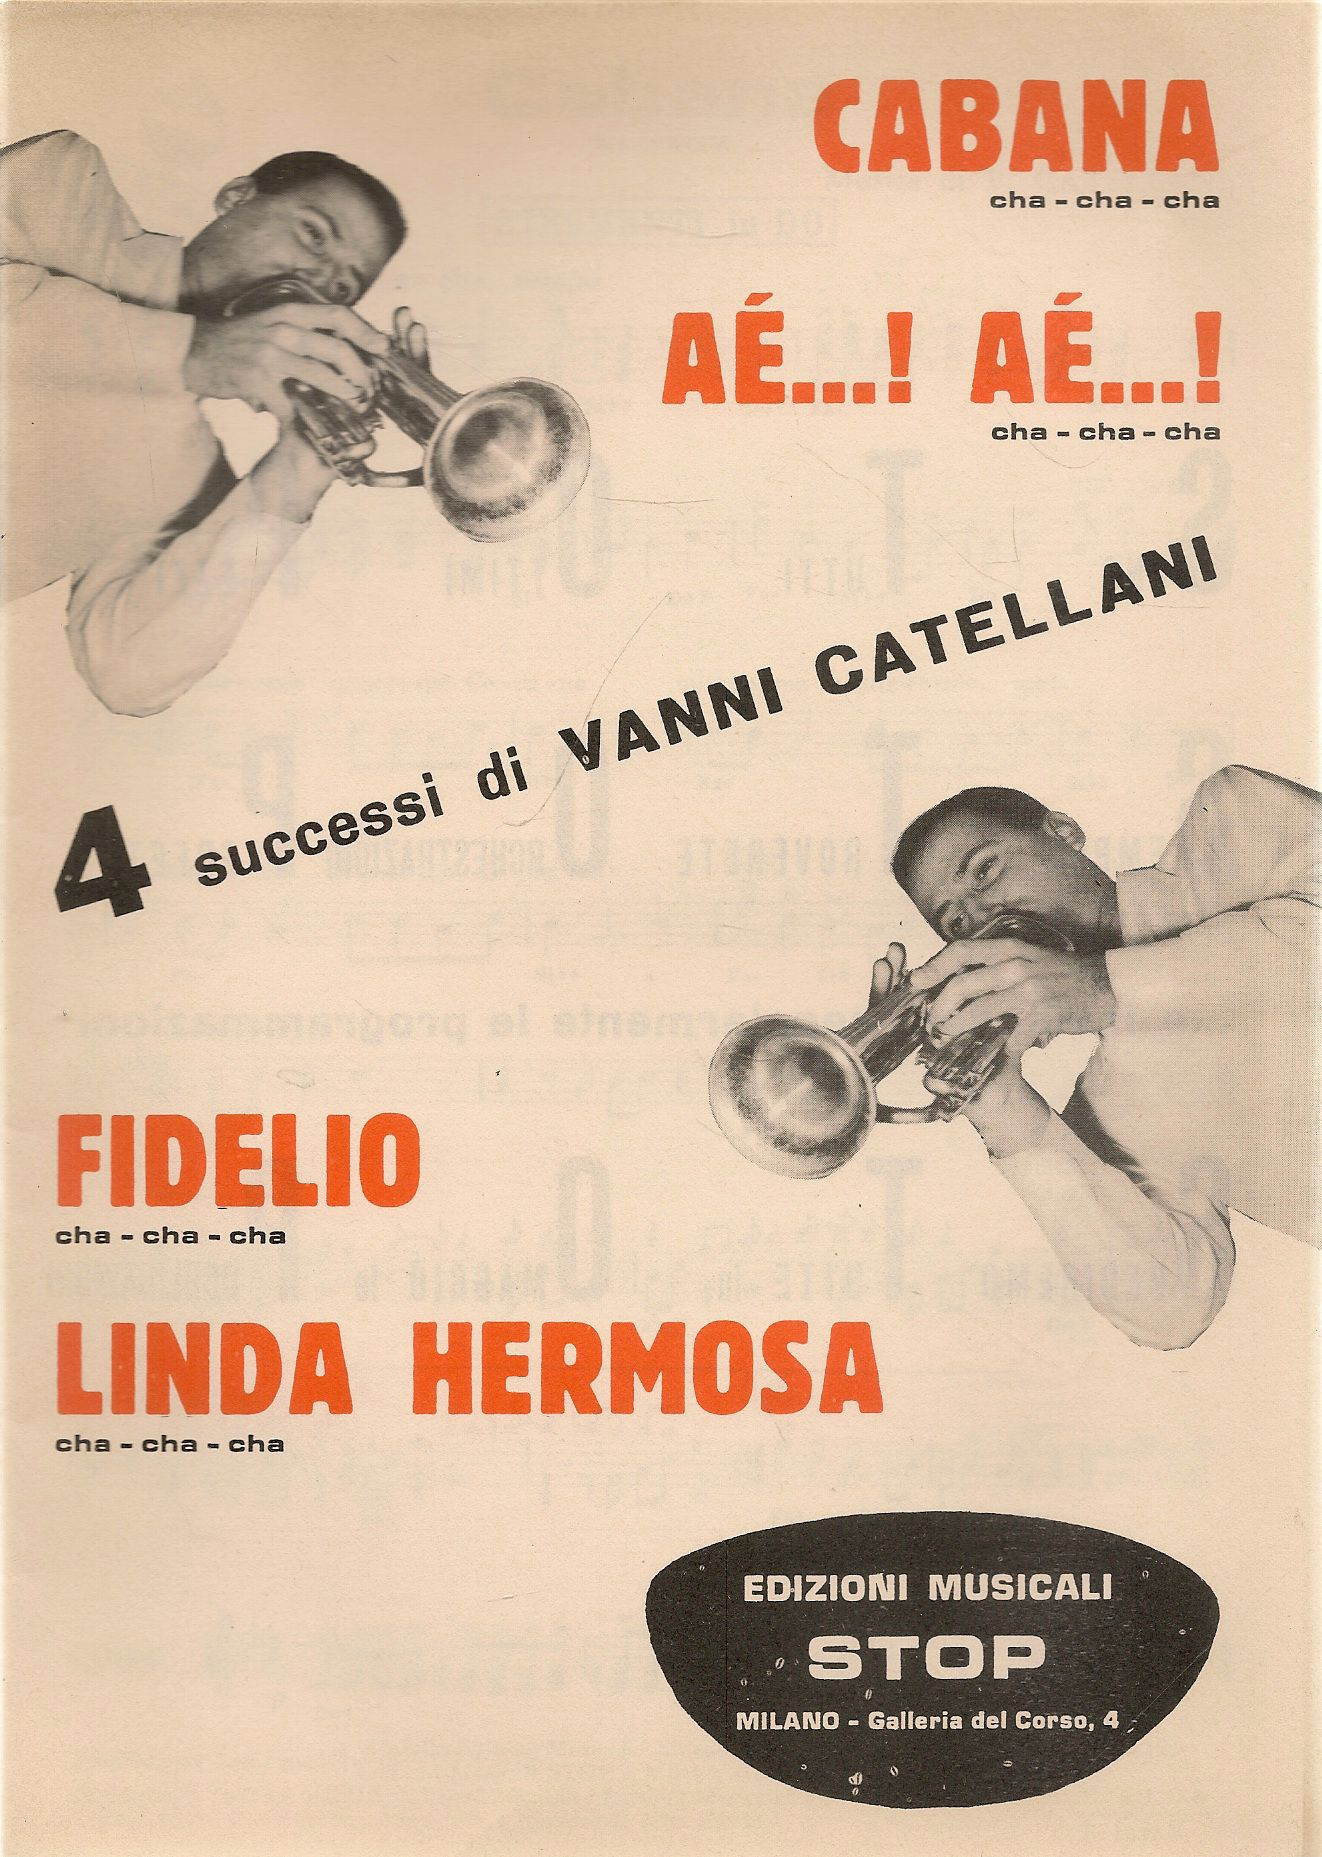 CABANA - AE'..AE'...- FIDELIO - LINDA HERMOSA -V. CATELLANI-SPARTITO-SHEEt MUSIC